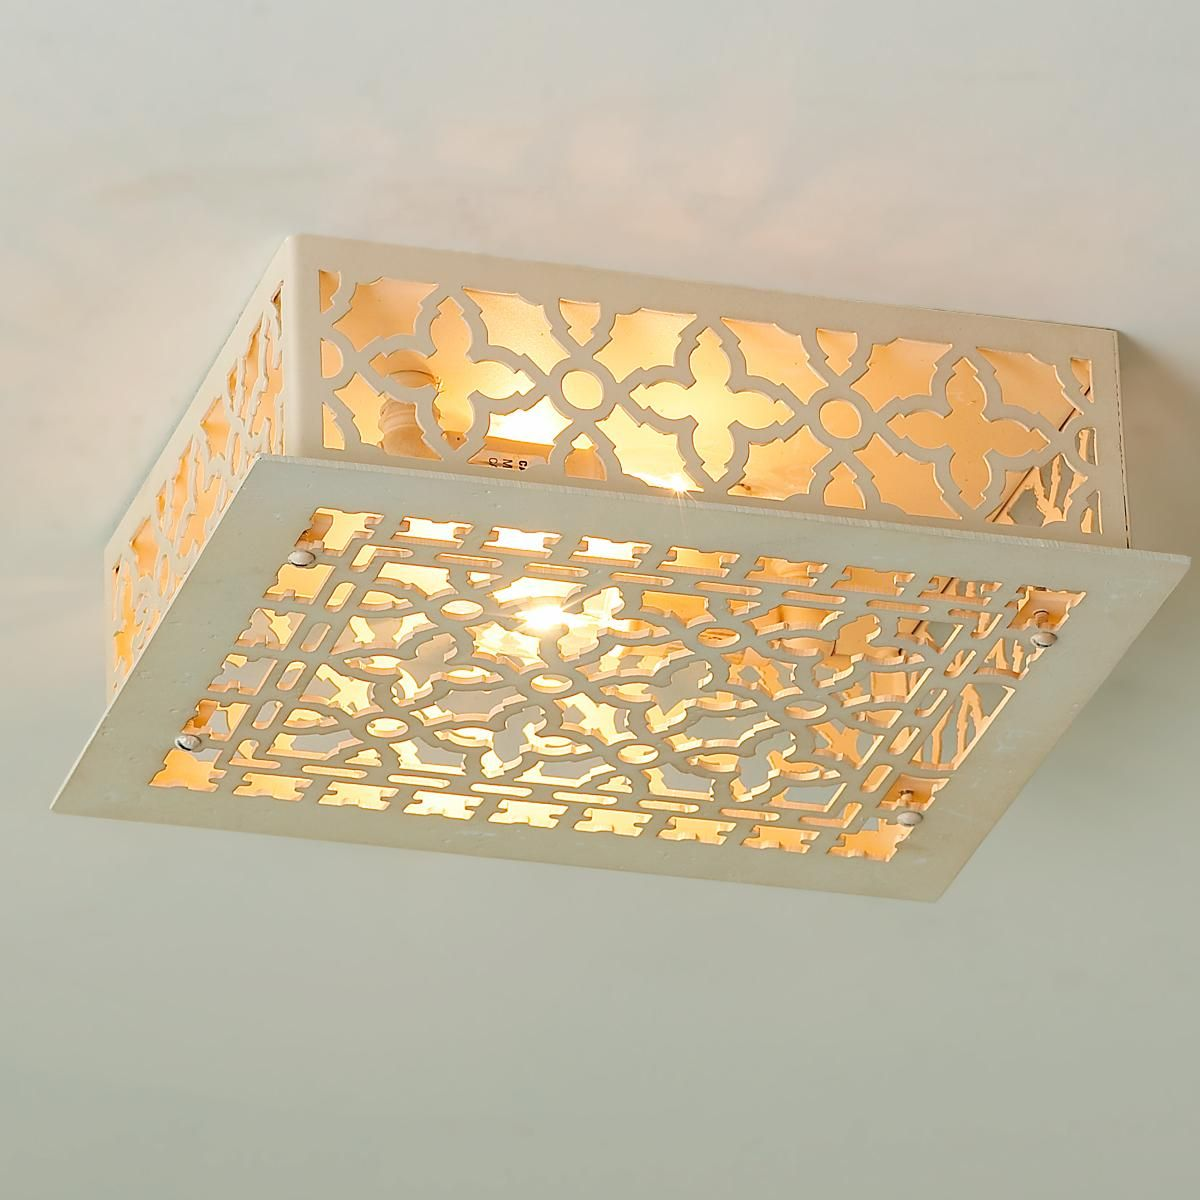 Reproduction Iron Grate Flush Mount Ceiling Light Ceiling Lights